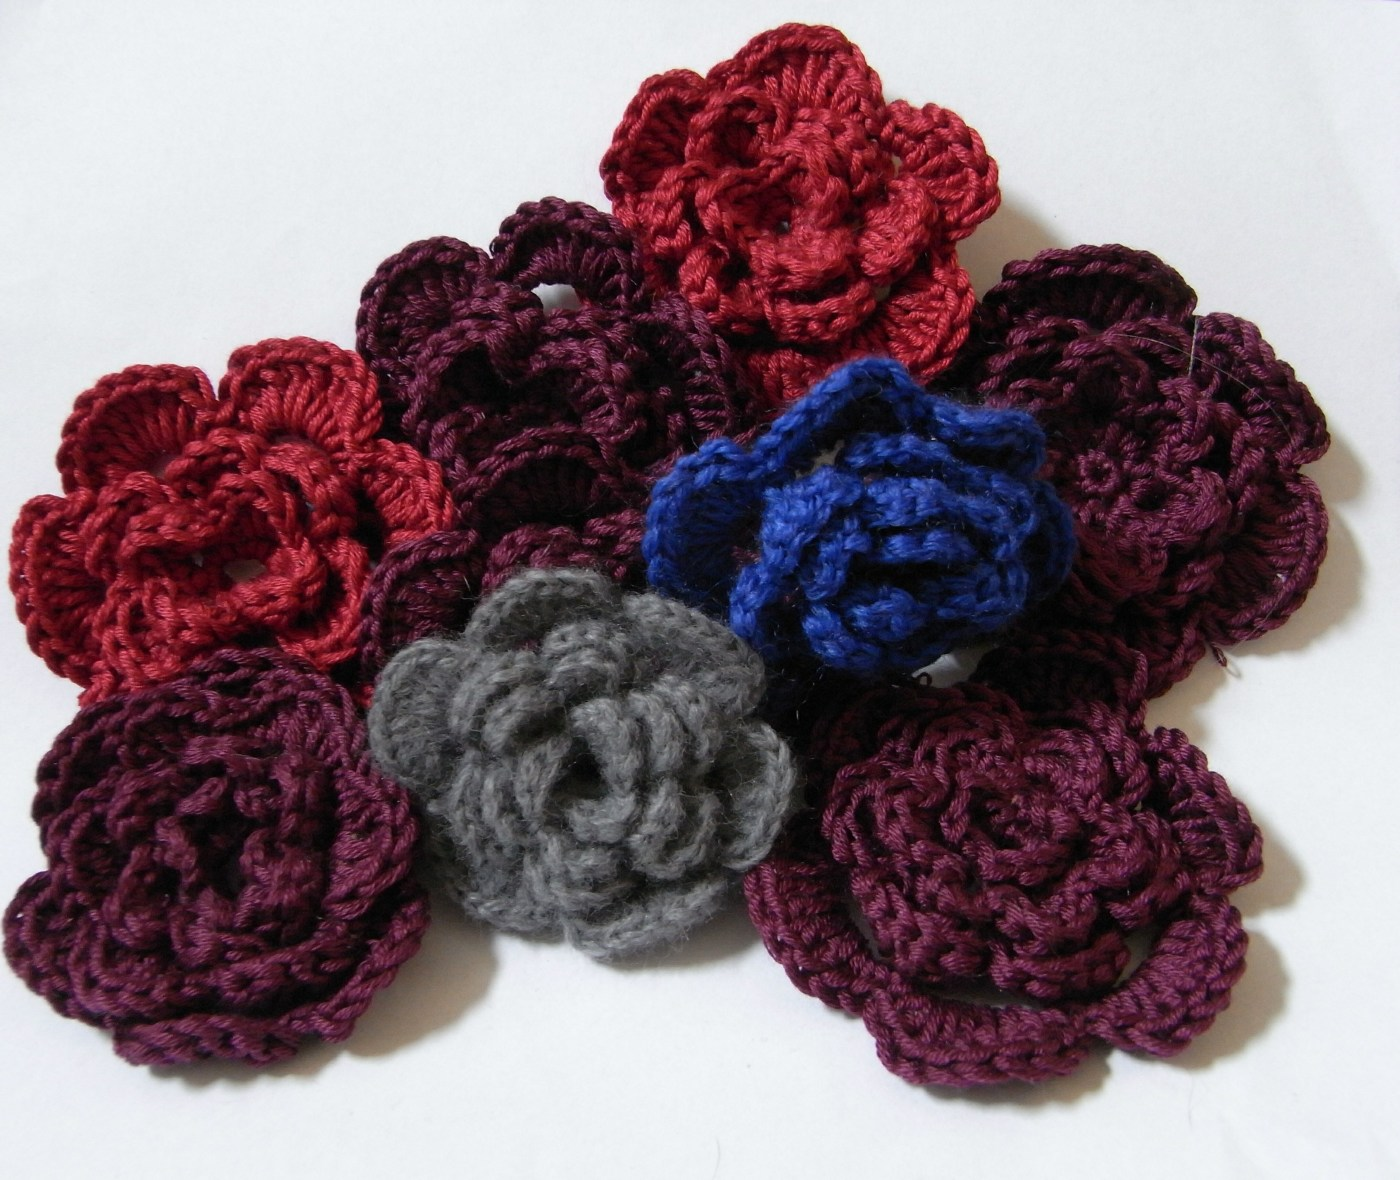 Crochet Crochet Crochet : saraccino: Crafting session with Lachafa - crochet flowers